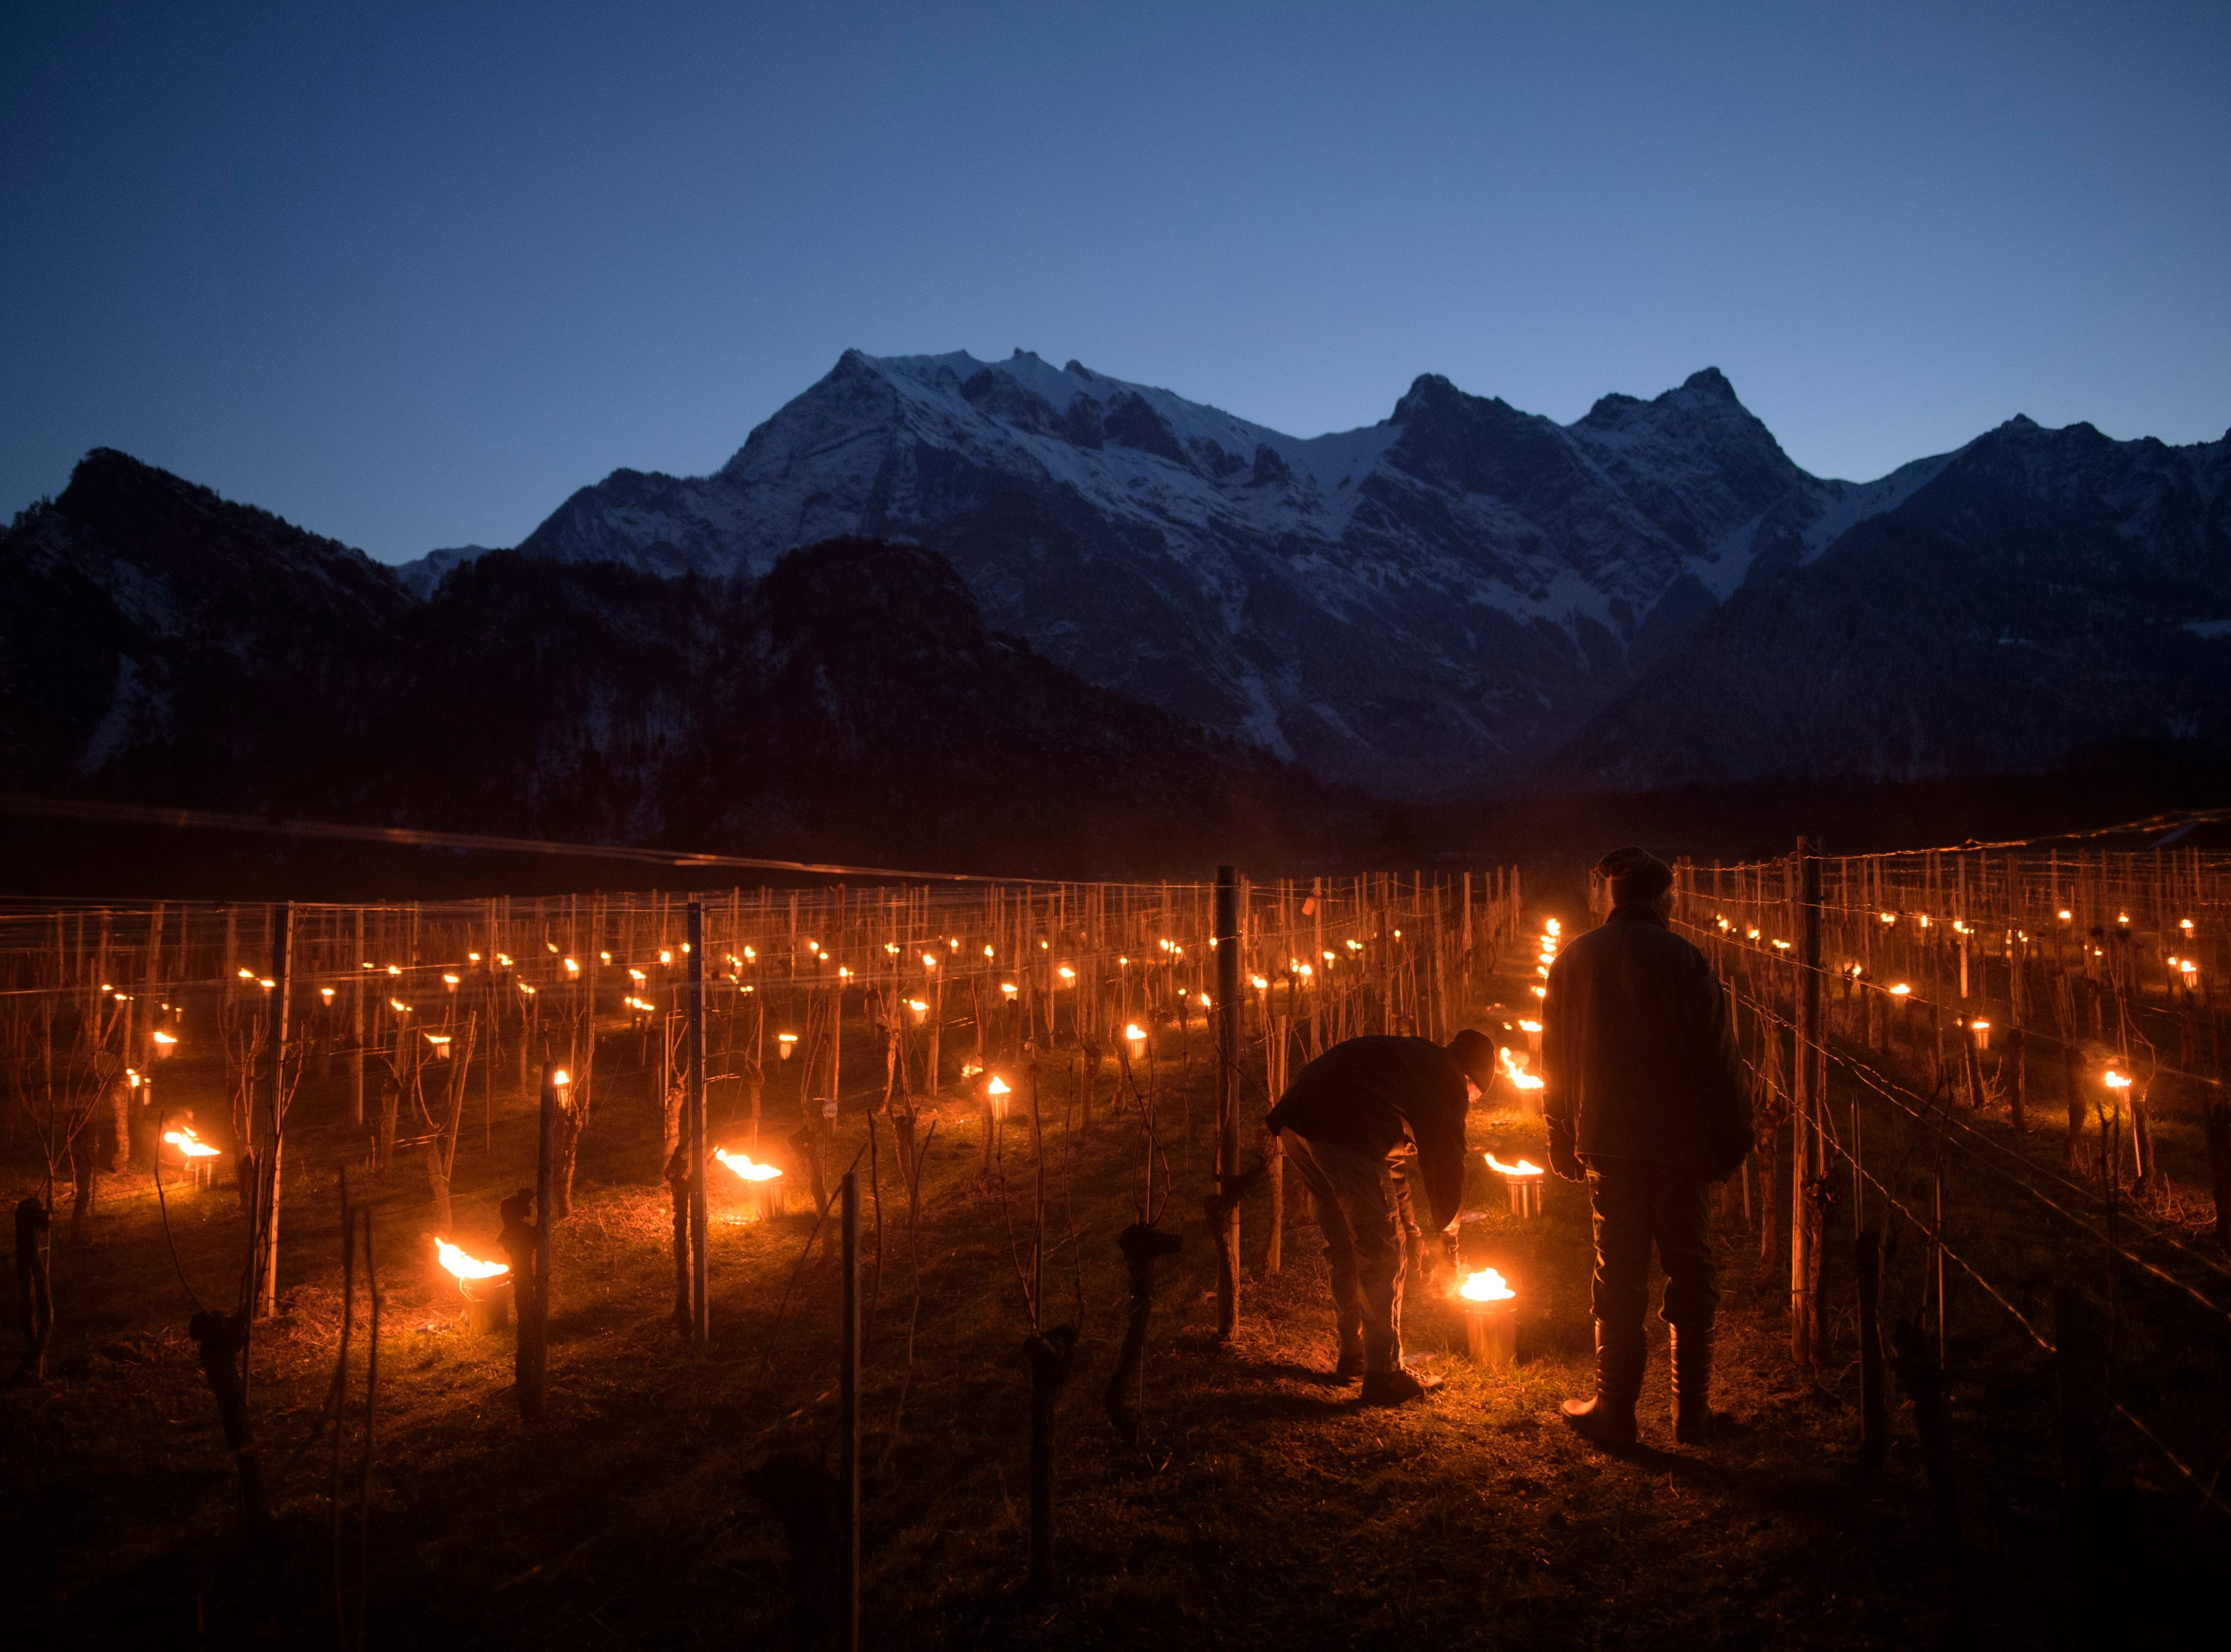 March 22, 2018: Frost candles are lit in a vineyard in Flaesch, Graubuenden, Switzerland. After the frost nights of 2016 and 2017 caused damage to crops, the local agricultural school is conducting trials to determine the value of measures like frost-candles.